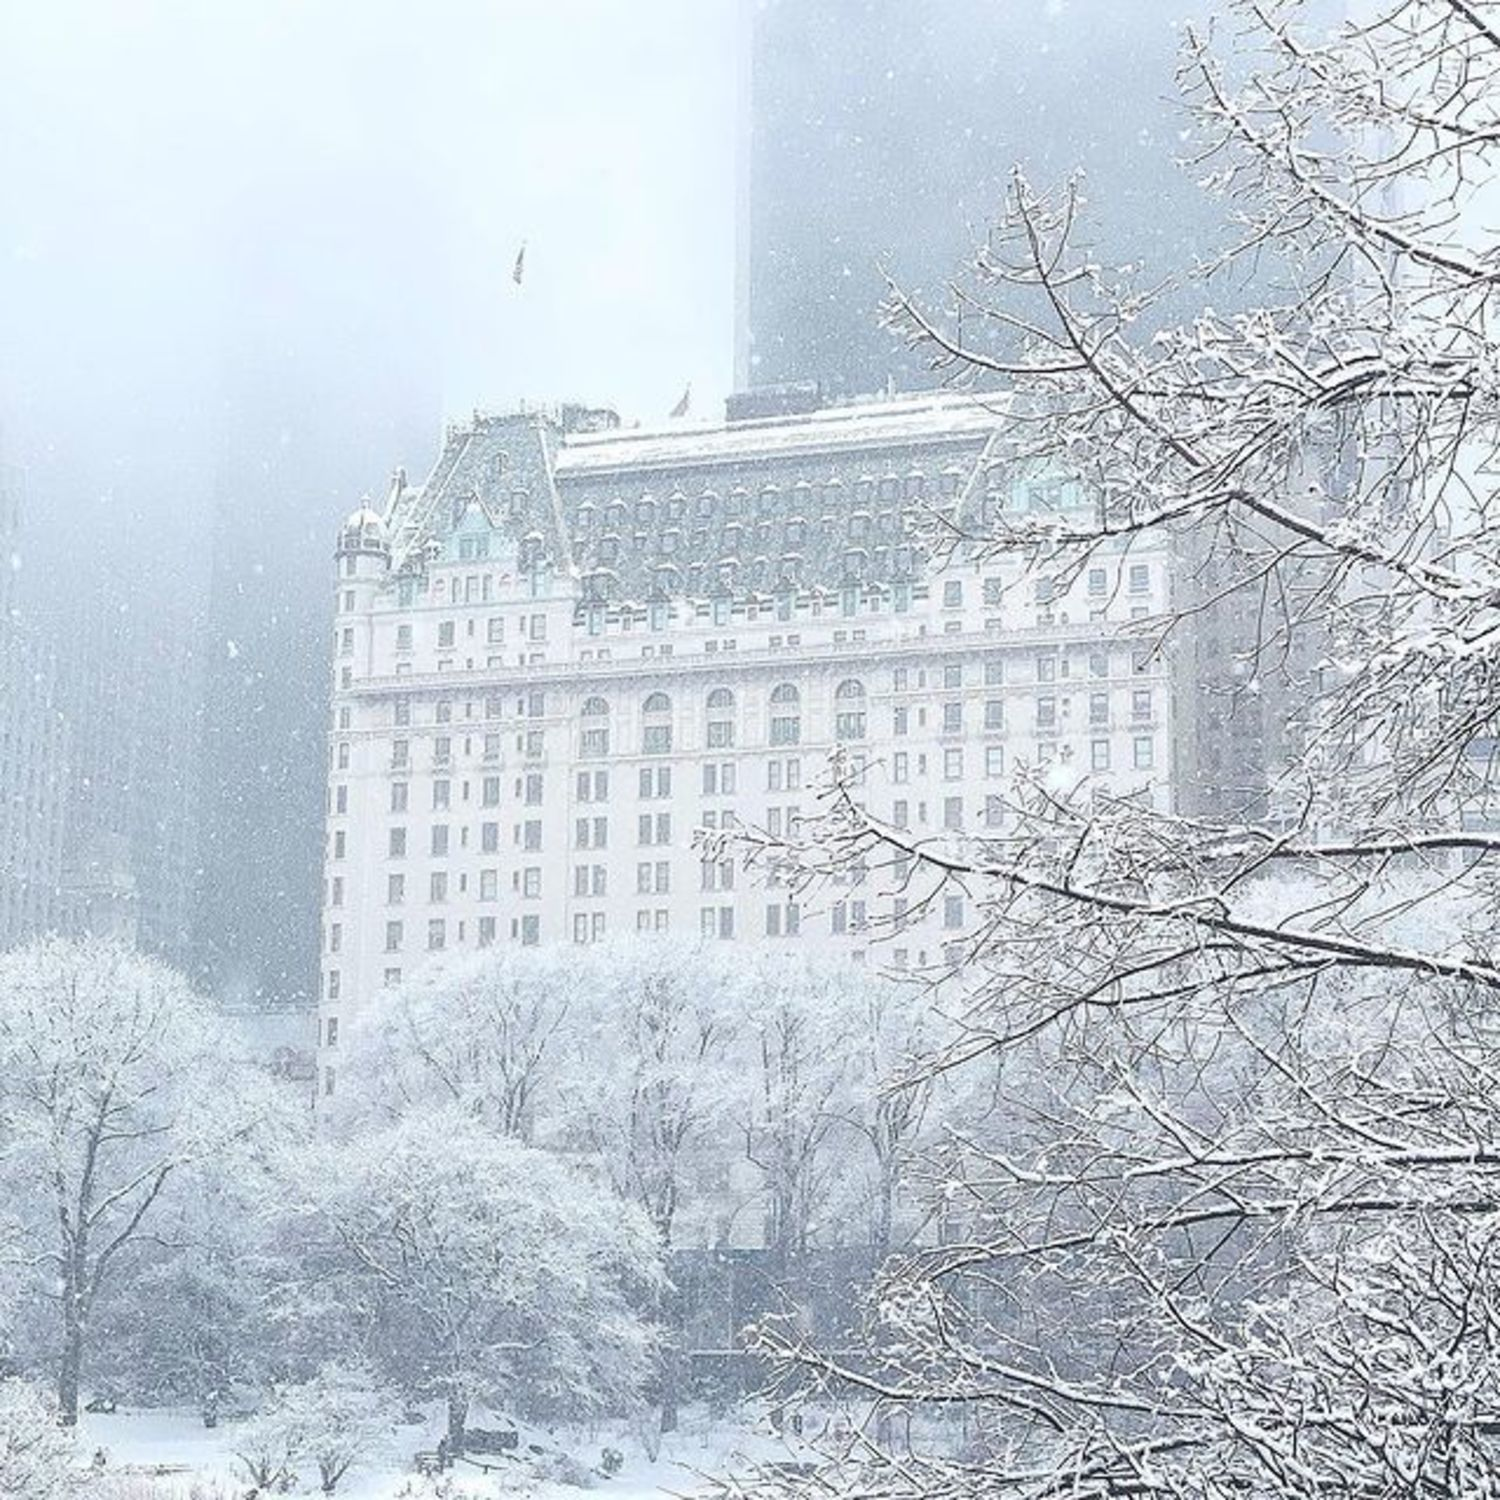 Plaza Hotel, Manhattan